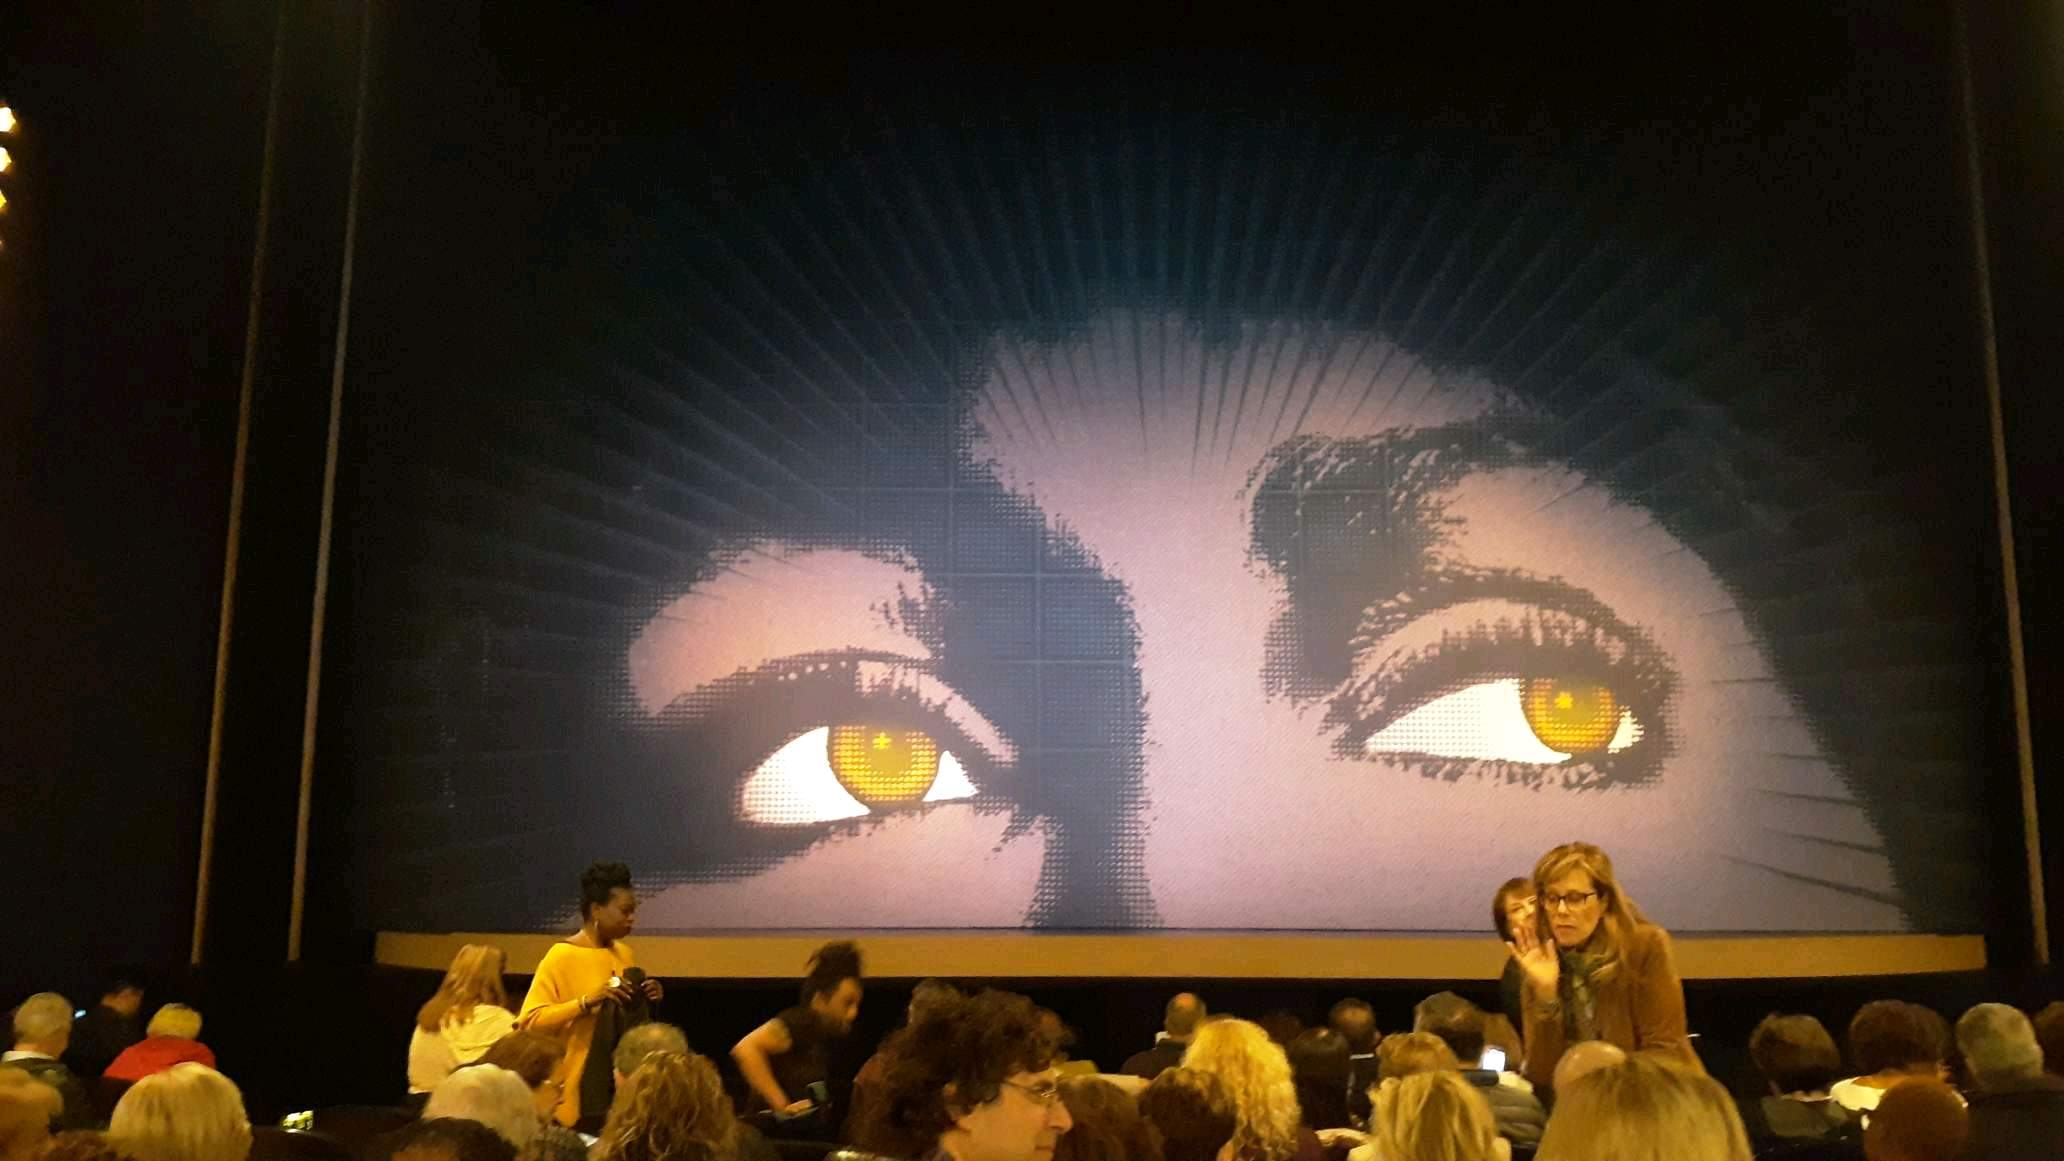 Lunt-Fontanne Theatre Section Orchestra C Row M Seat 106